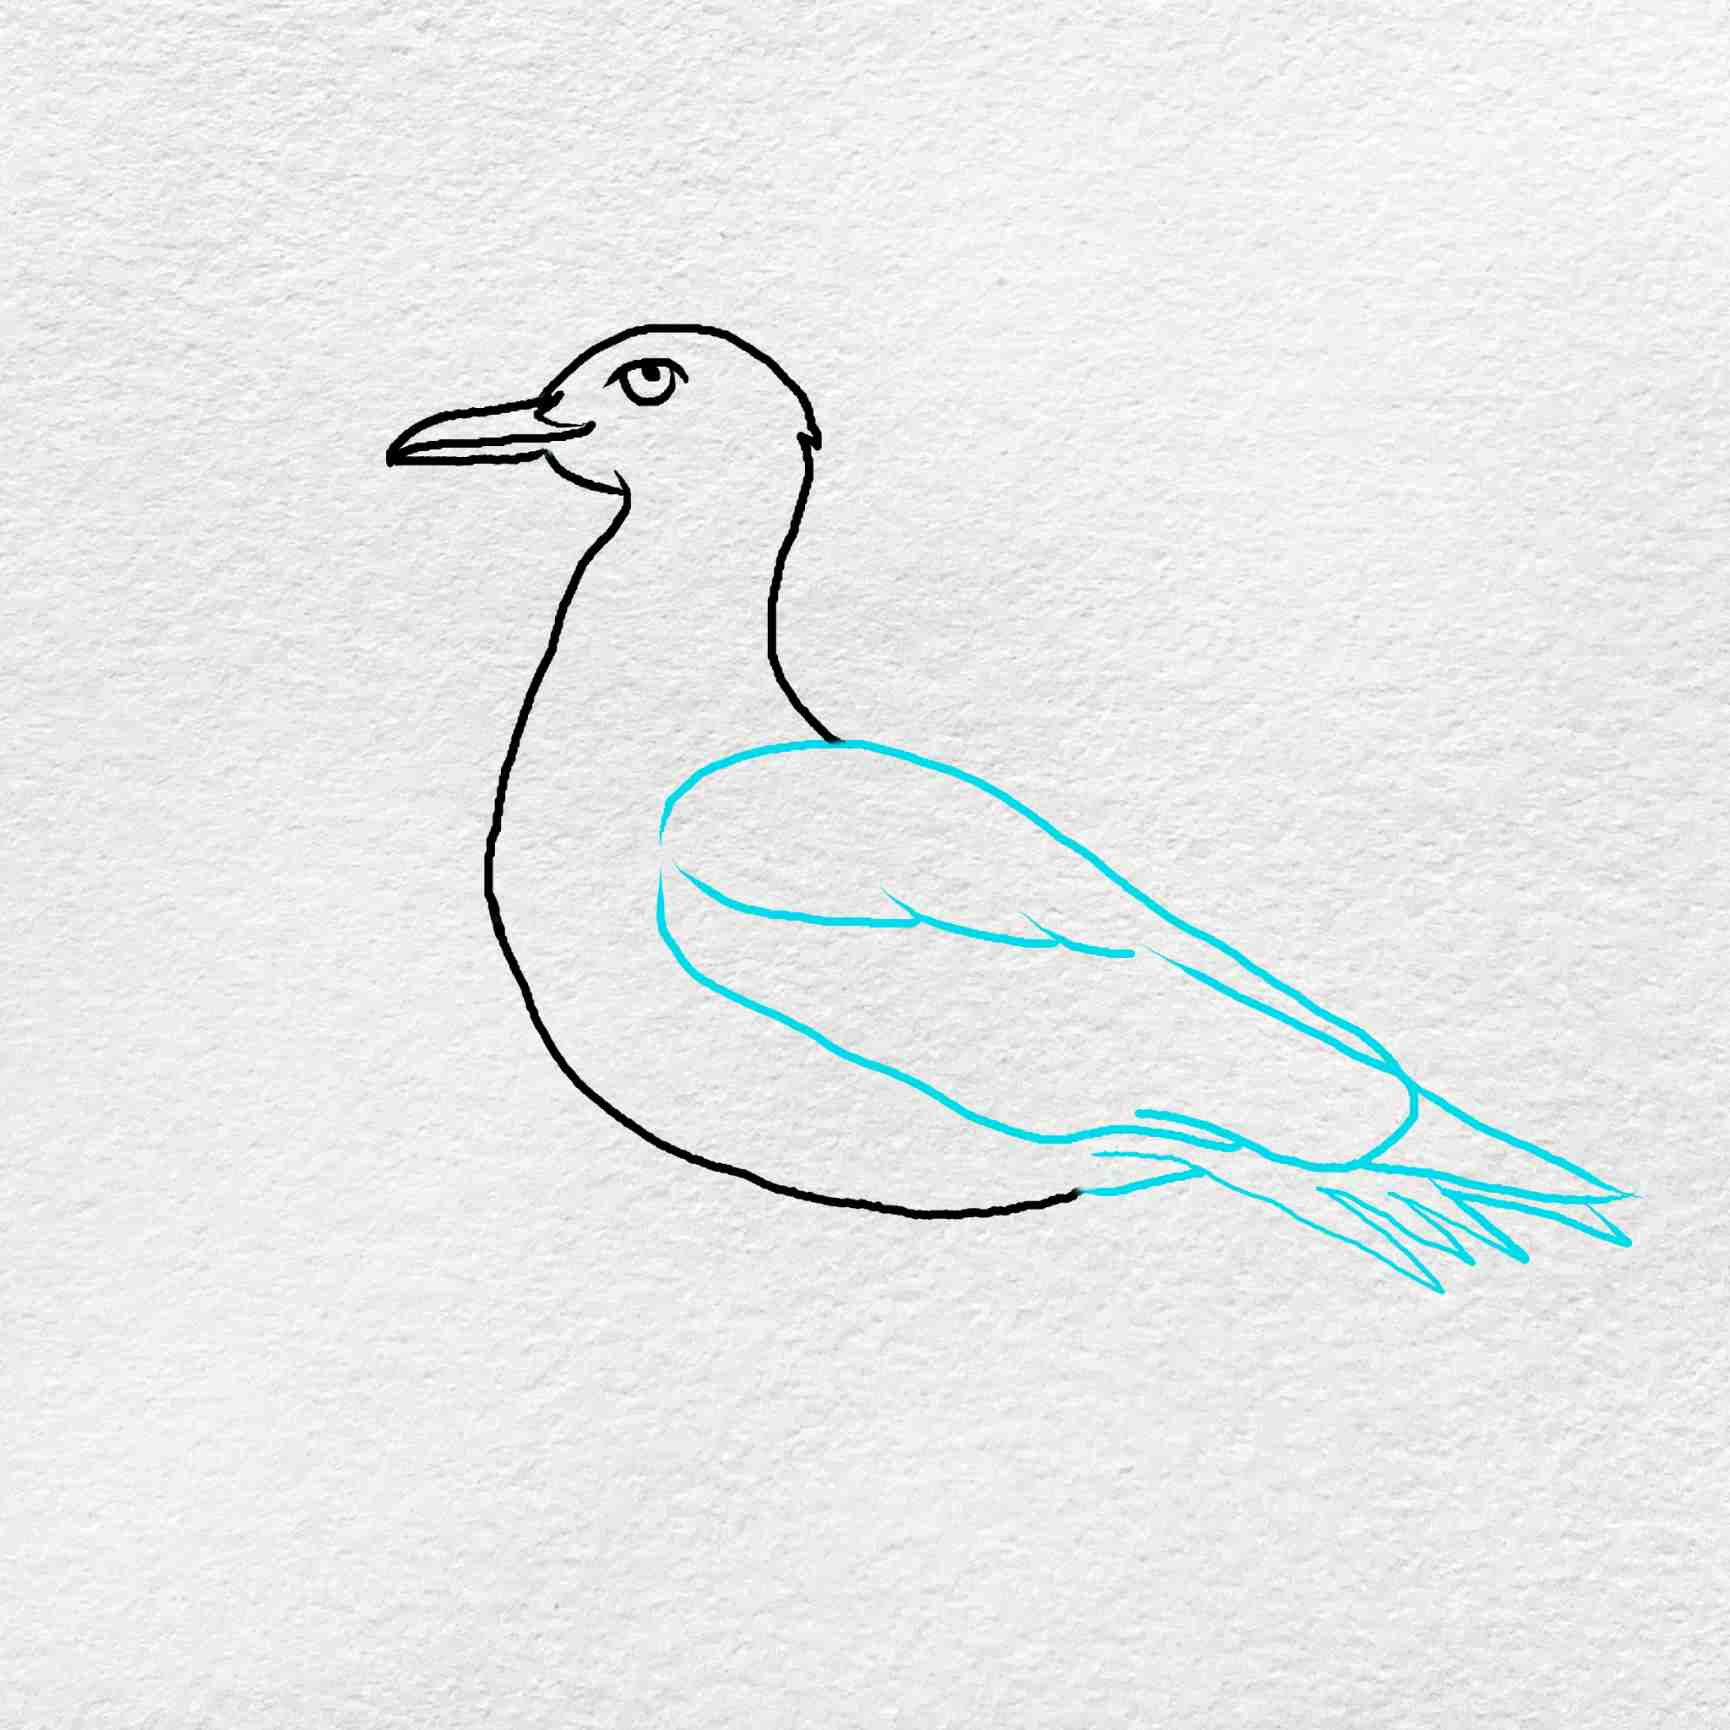 How To Draw A Seagull: Step 4